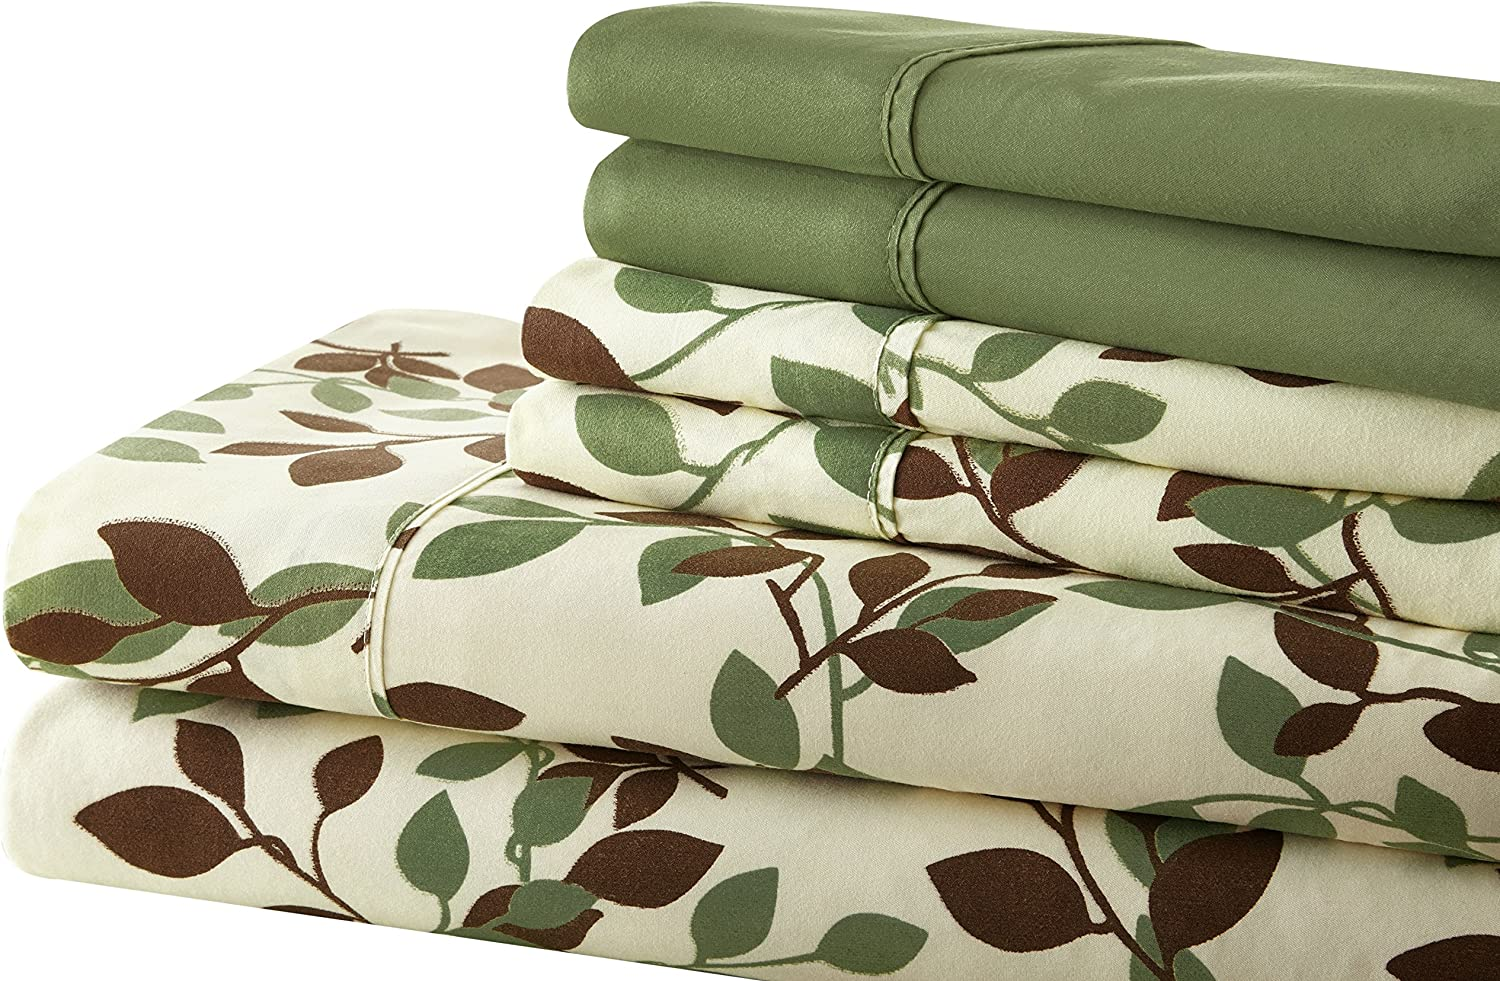 Spirit Linen Palazzo Home 103GSM 6-Piece Luxurious Printed Sheet Set, Full, Green Brown Leaves